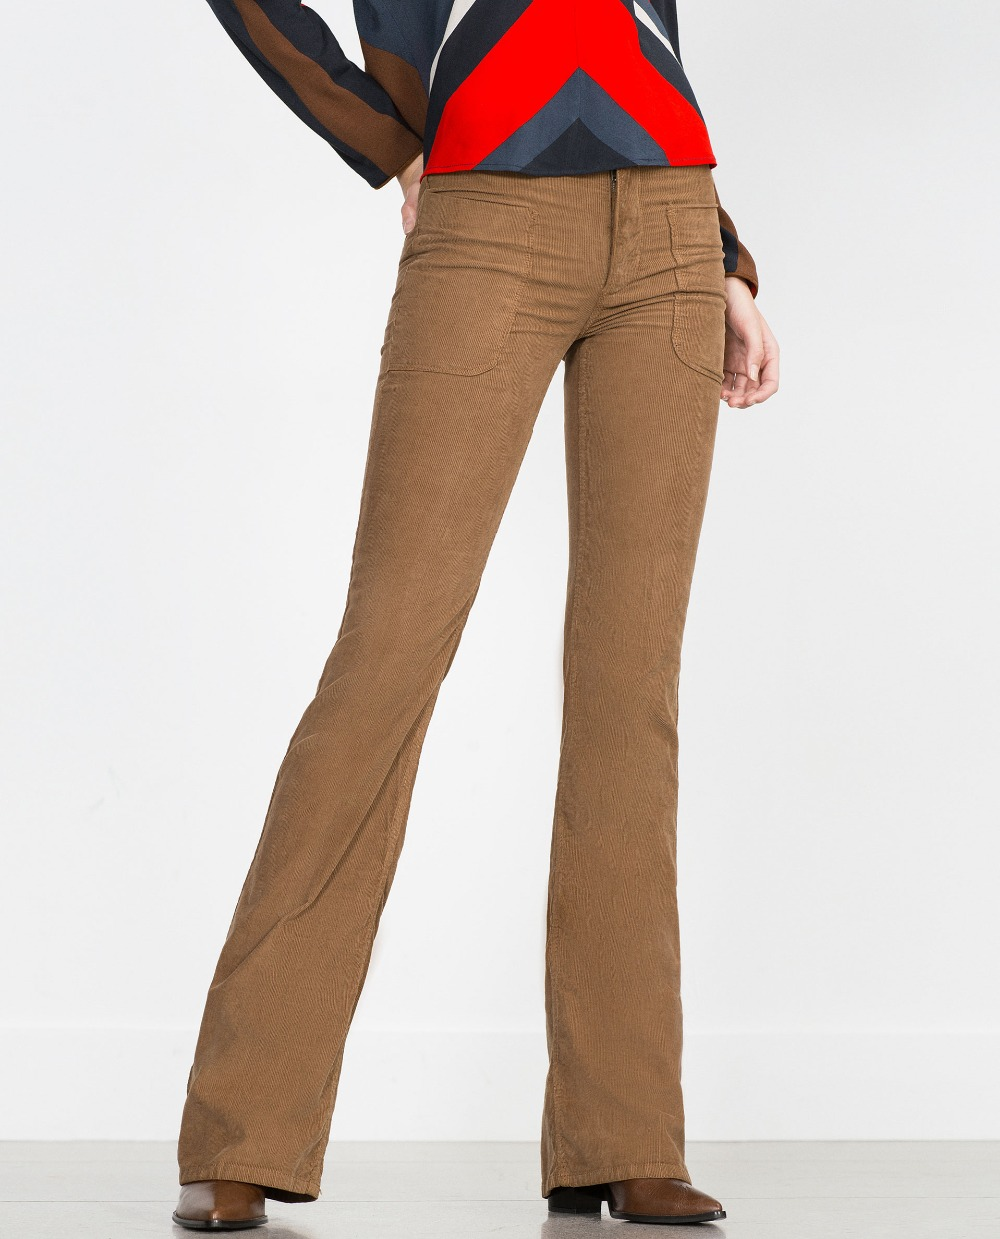 Cool Chic Ways To Wear Khaki Pants  Glam Radar